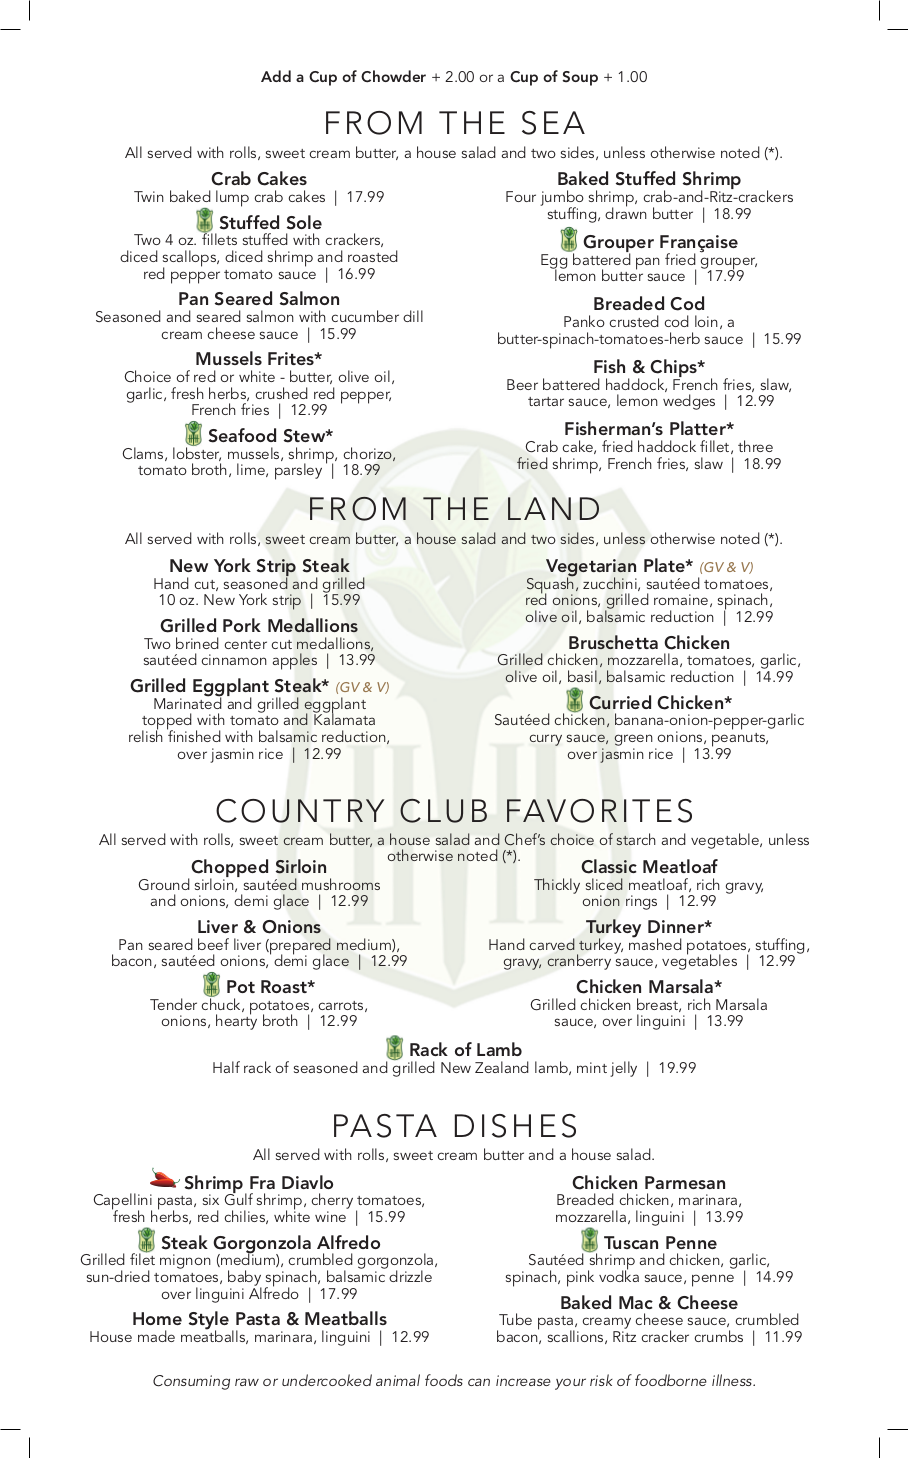 Hacienda Hills_Dinner Menu_063092_PR-00848_11.2017_PRINT2.Png